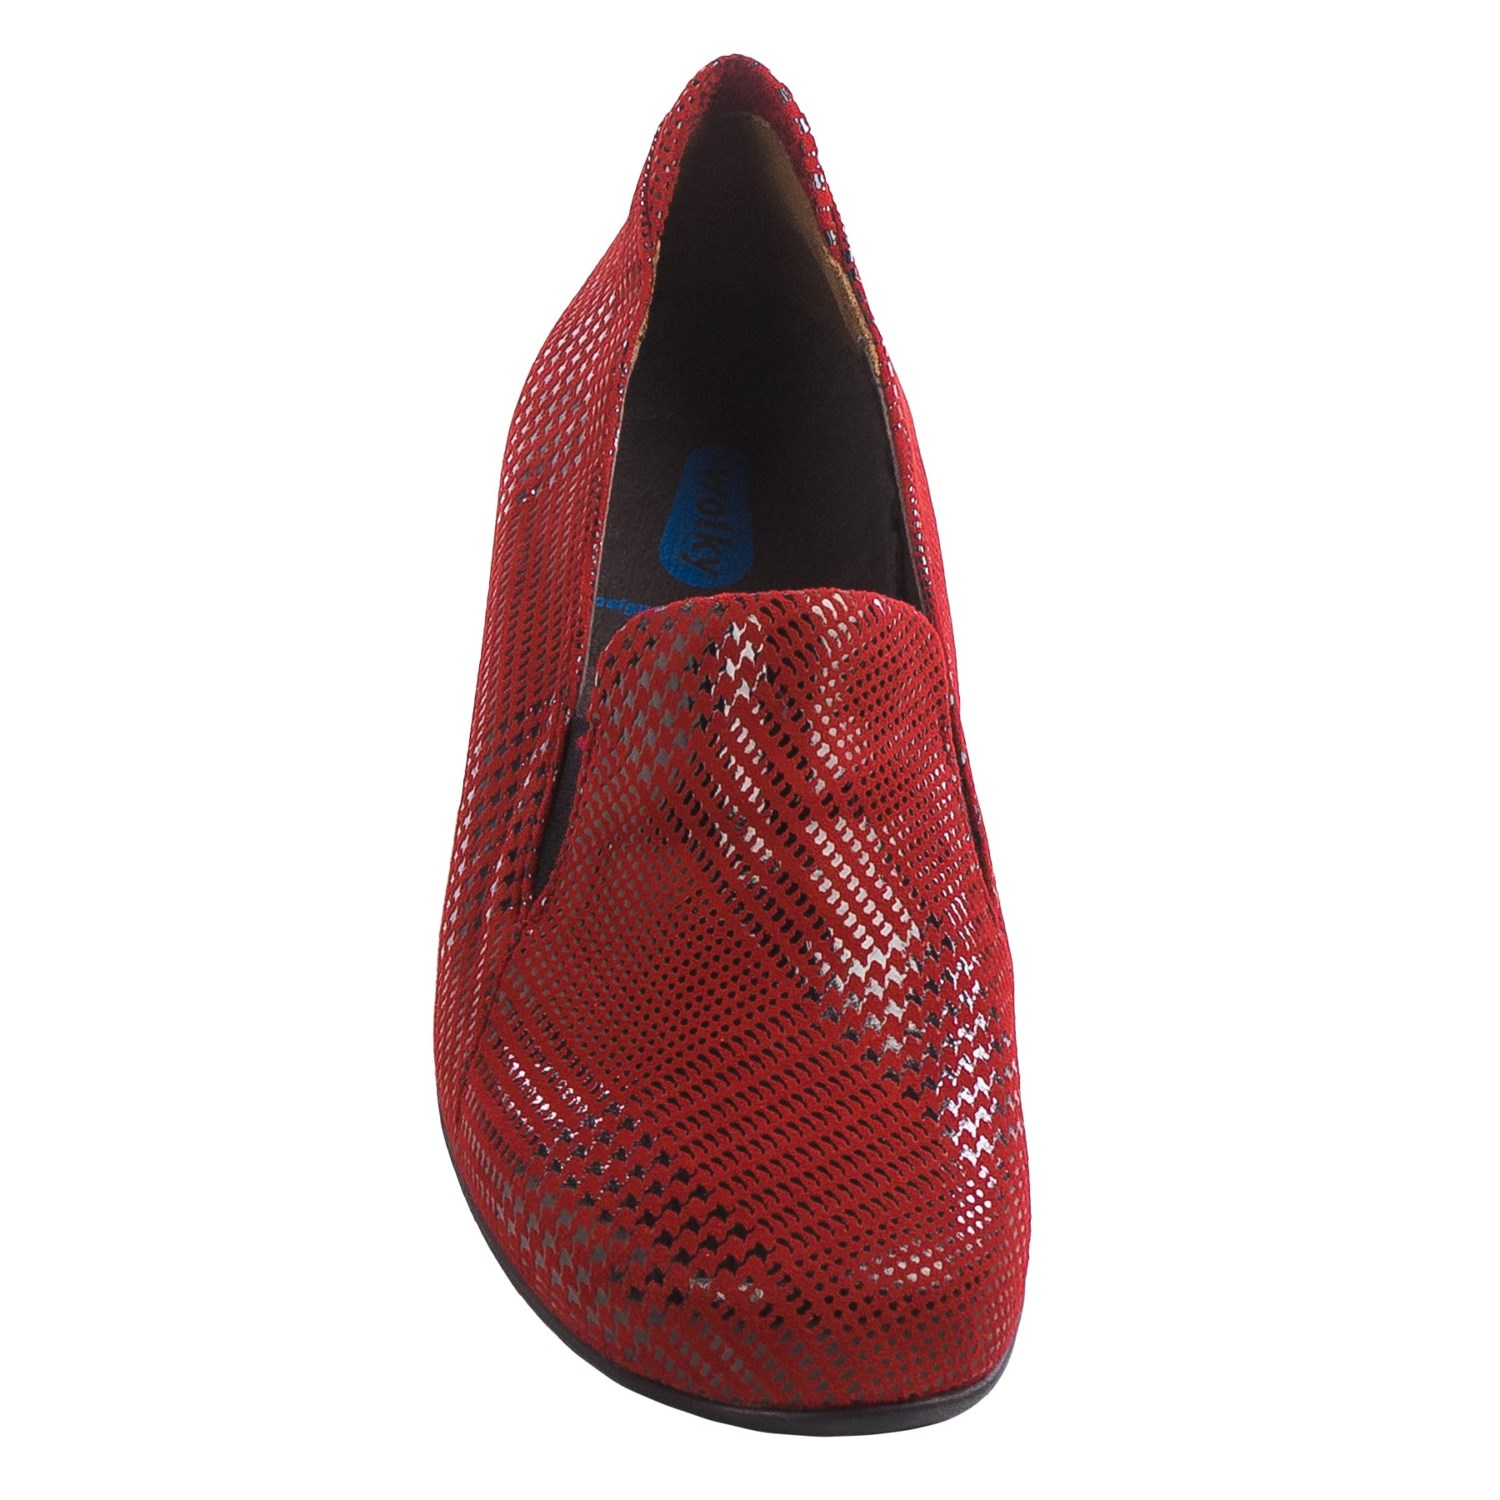 Wolky Shoes Australia